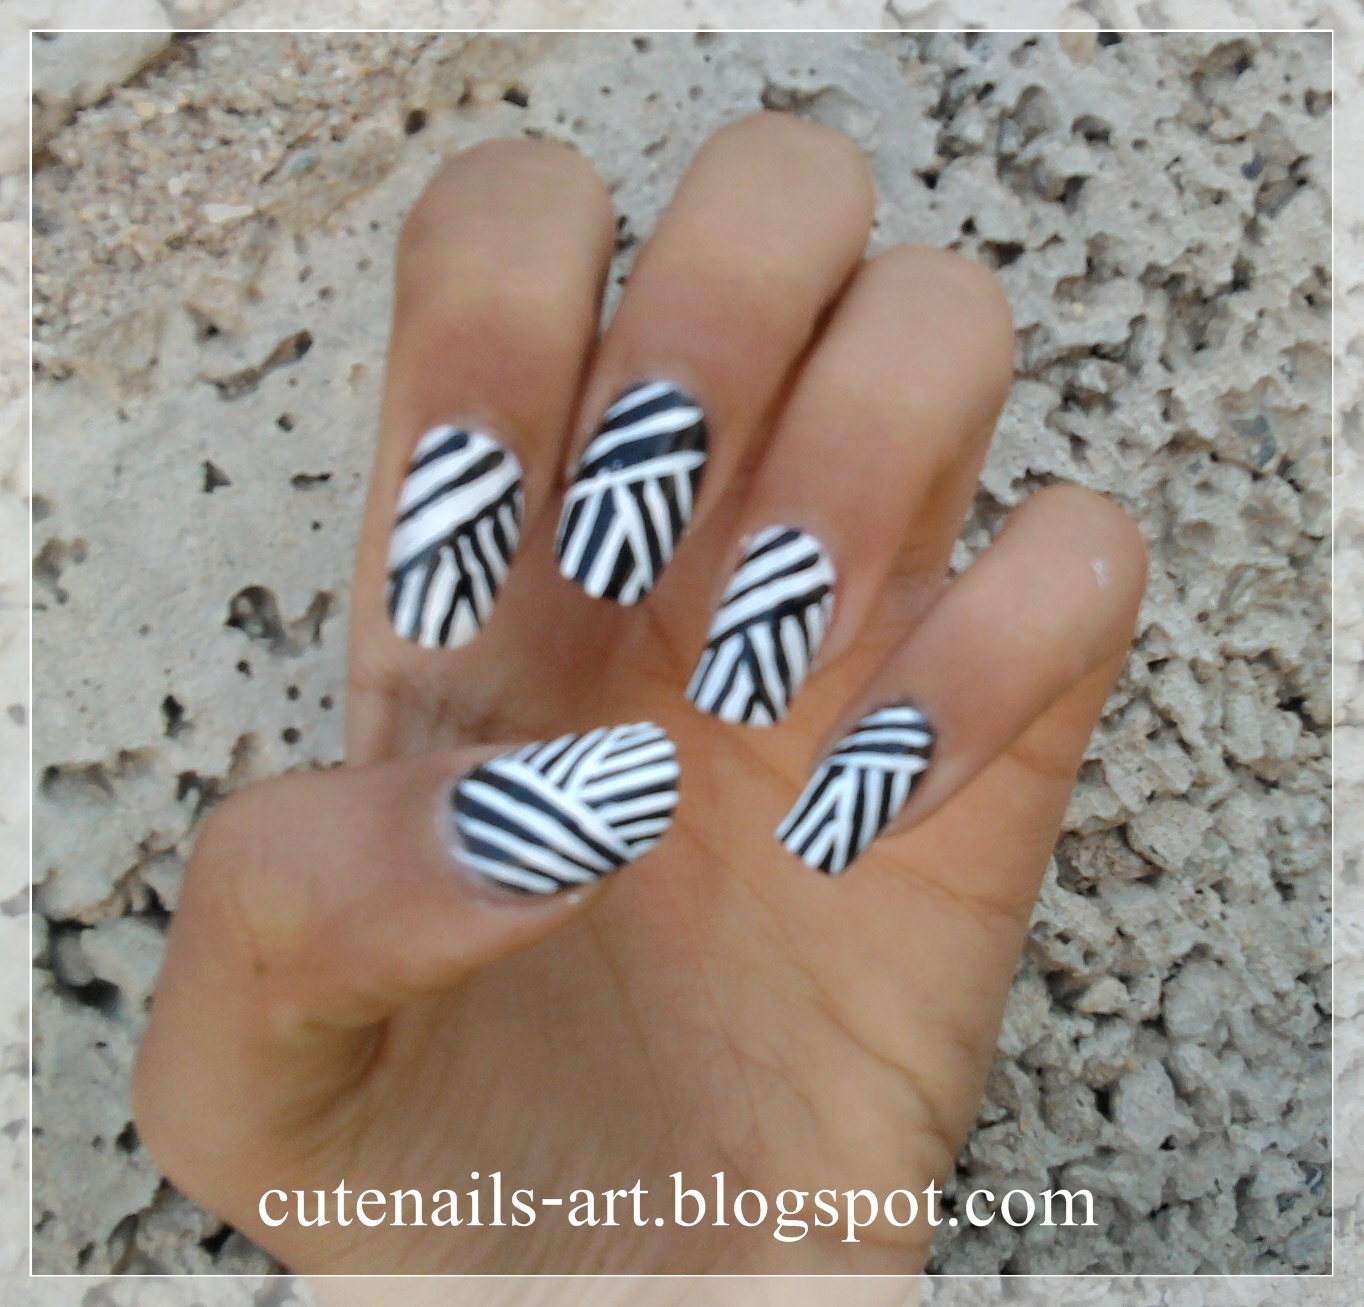 weaving lines nail art design/black and white - Cutenails-art: Weaving Lines Nail Art Design/black And White